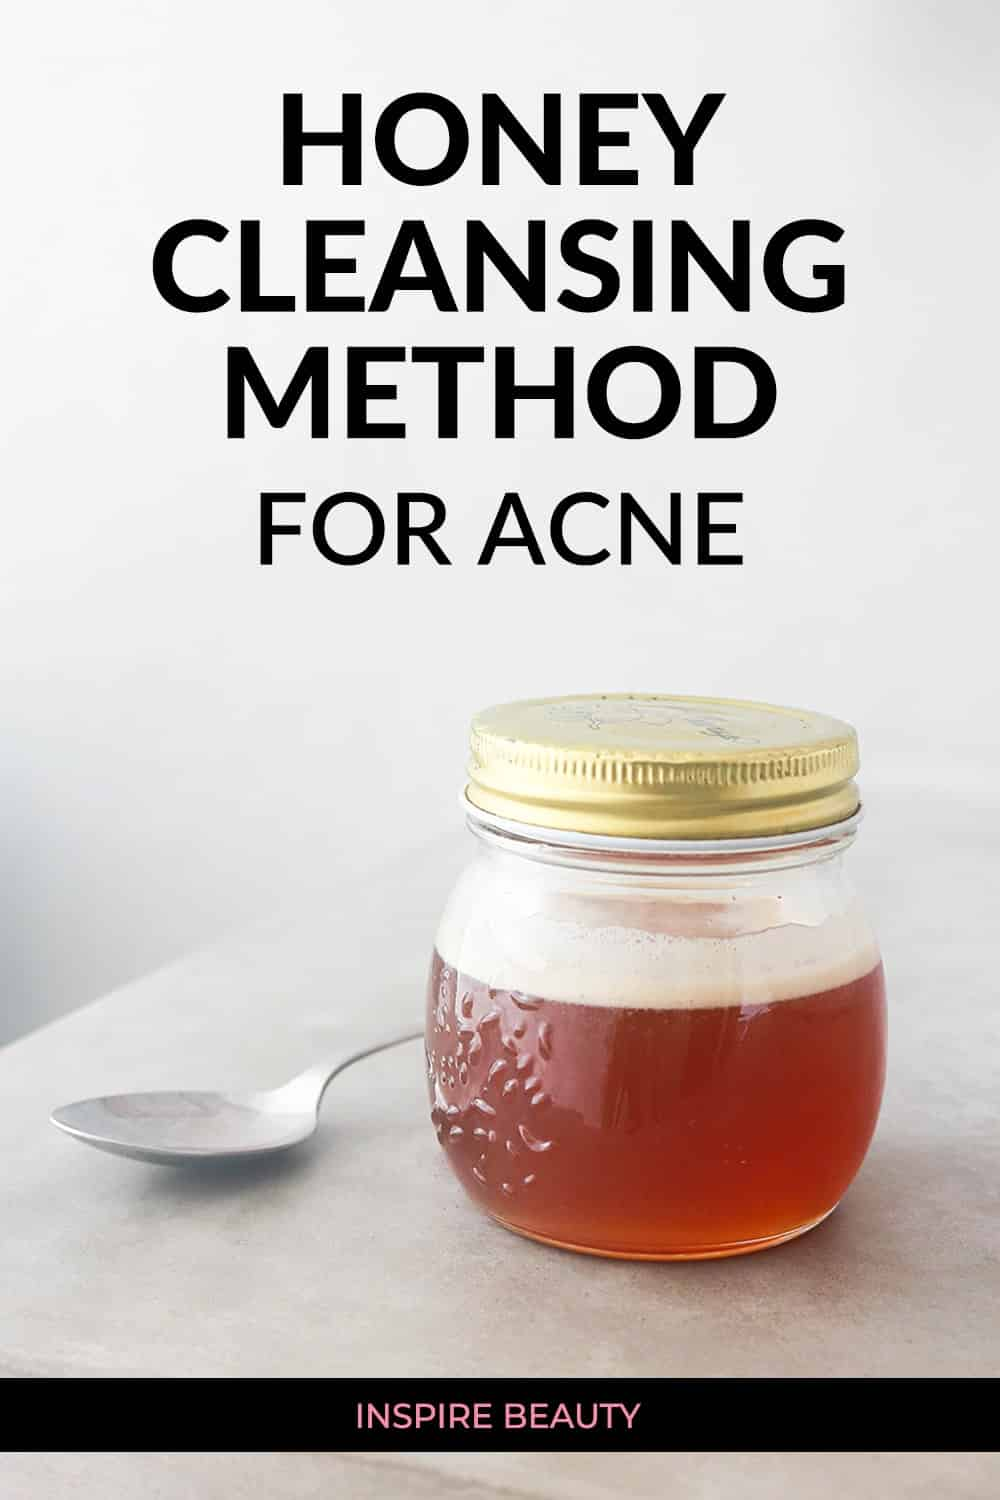 Honey cleanser for acne can help clear up breakouts and pimples fast, get instruction, video demo, and tips for best results